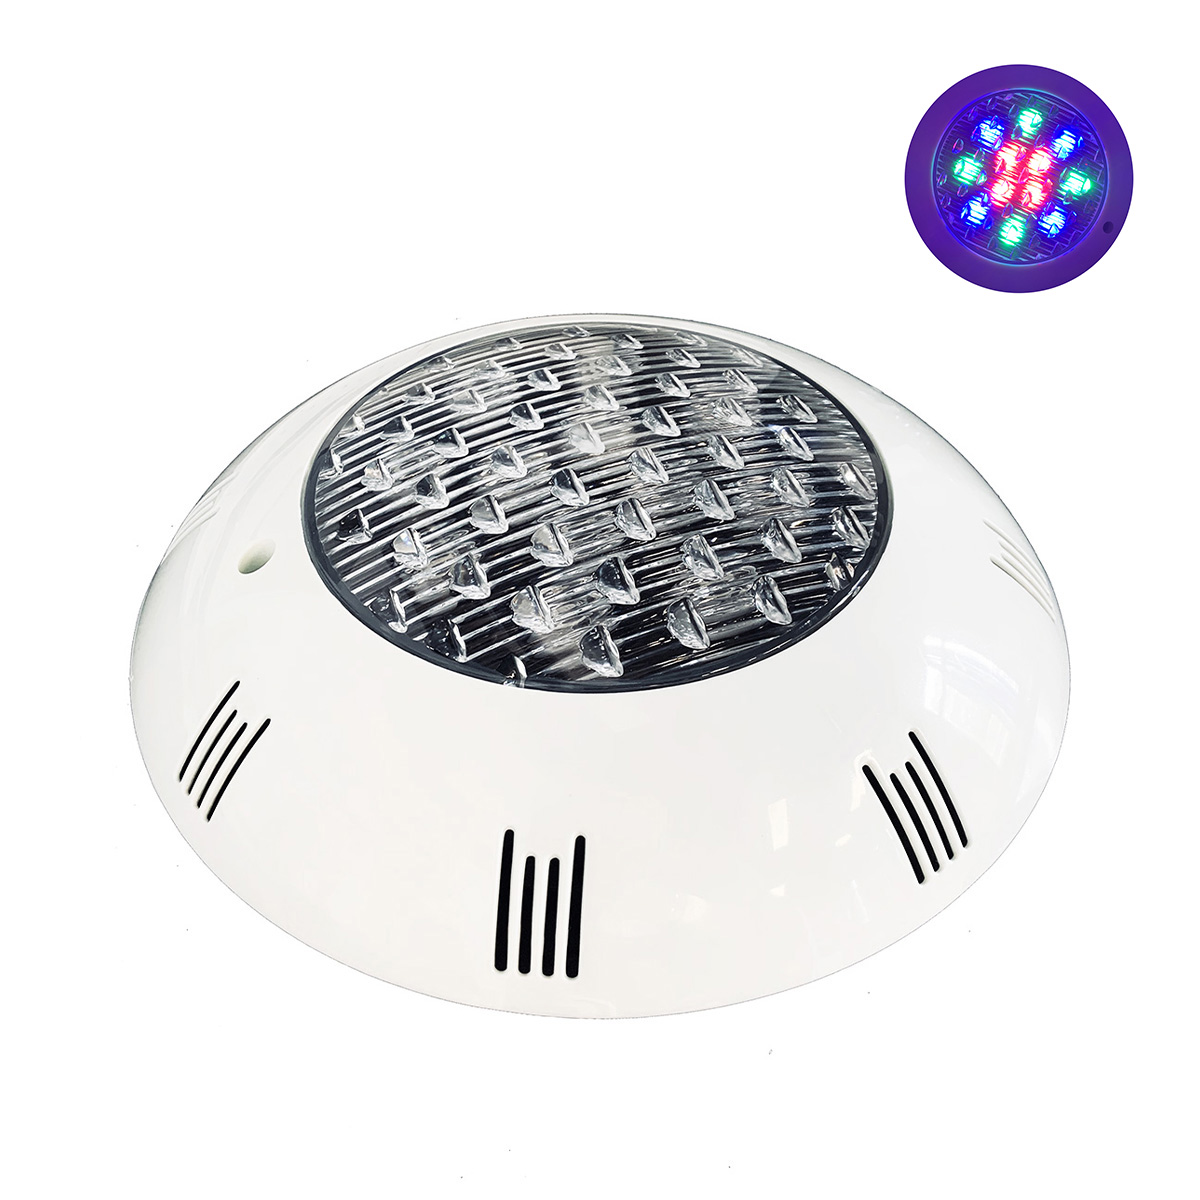 LED spotlight 12V 12w for indoor Fountains, Waterproof IP68 FE80-12W Multicolor